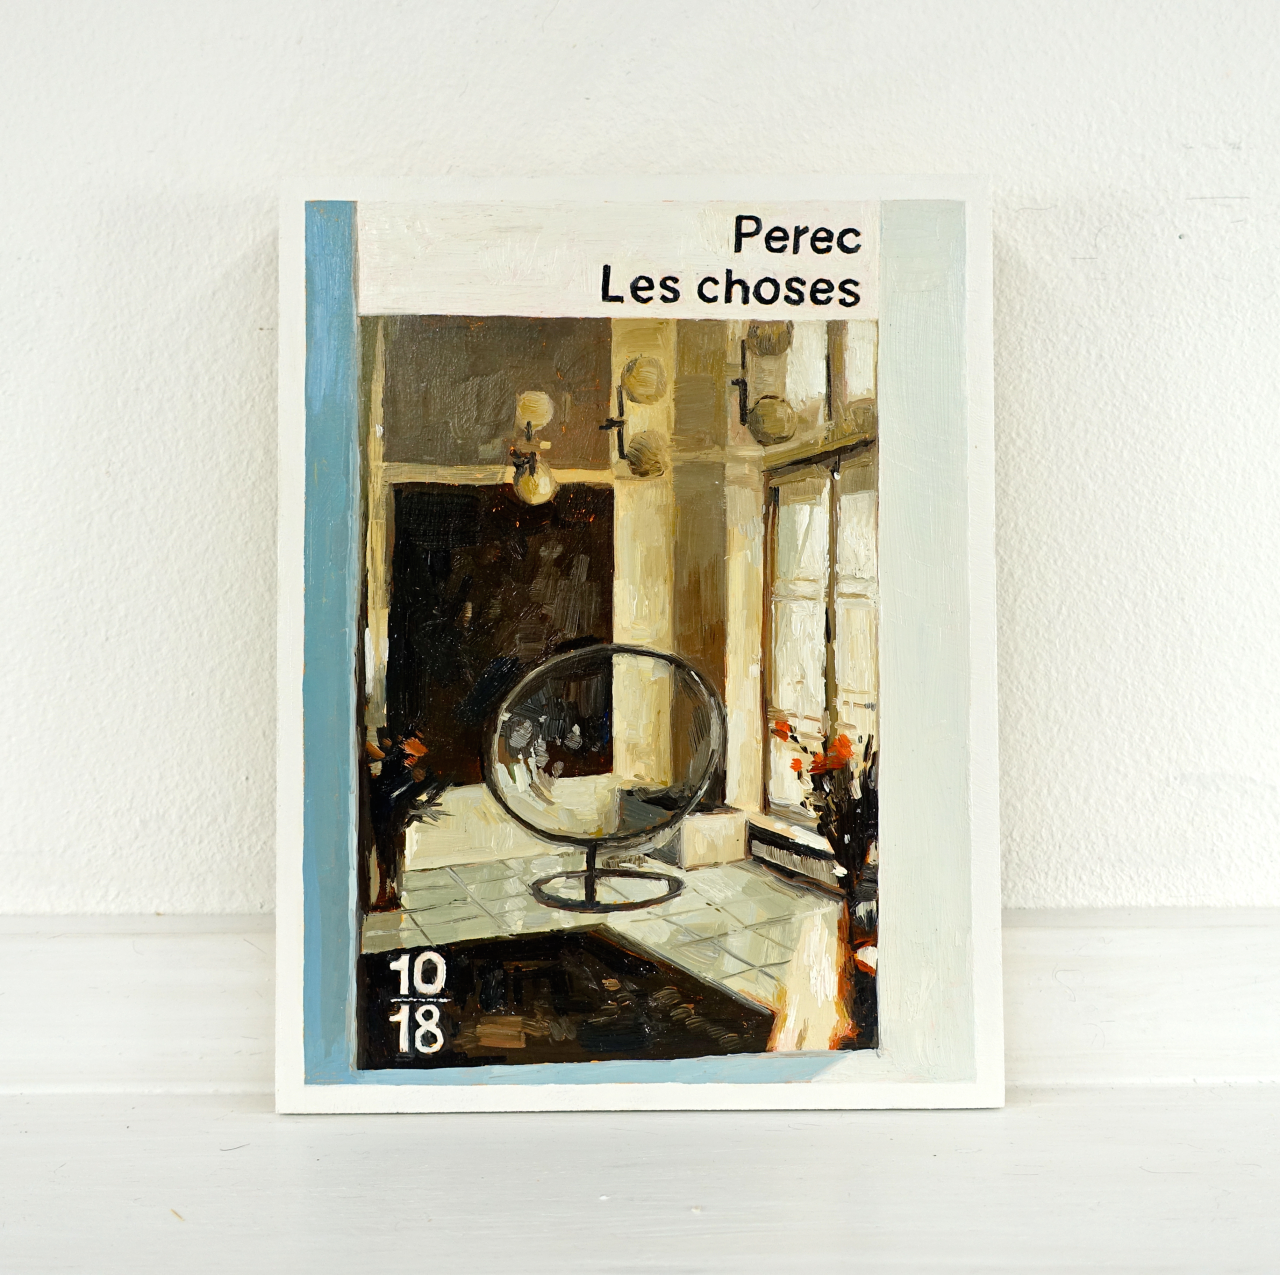 Untitled Project: Things {Georges Perez / Les choses] 2015